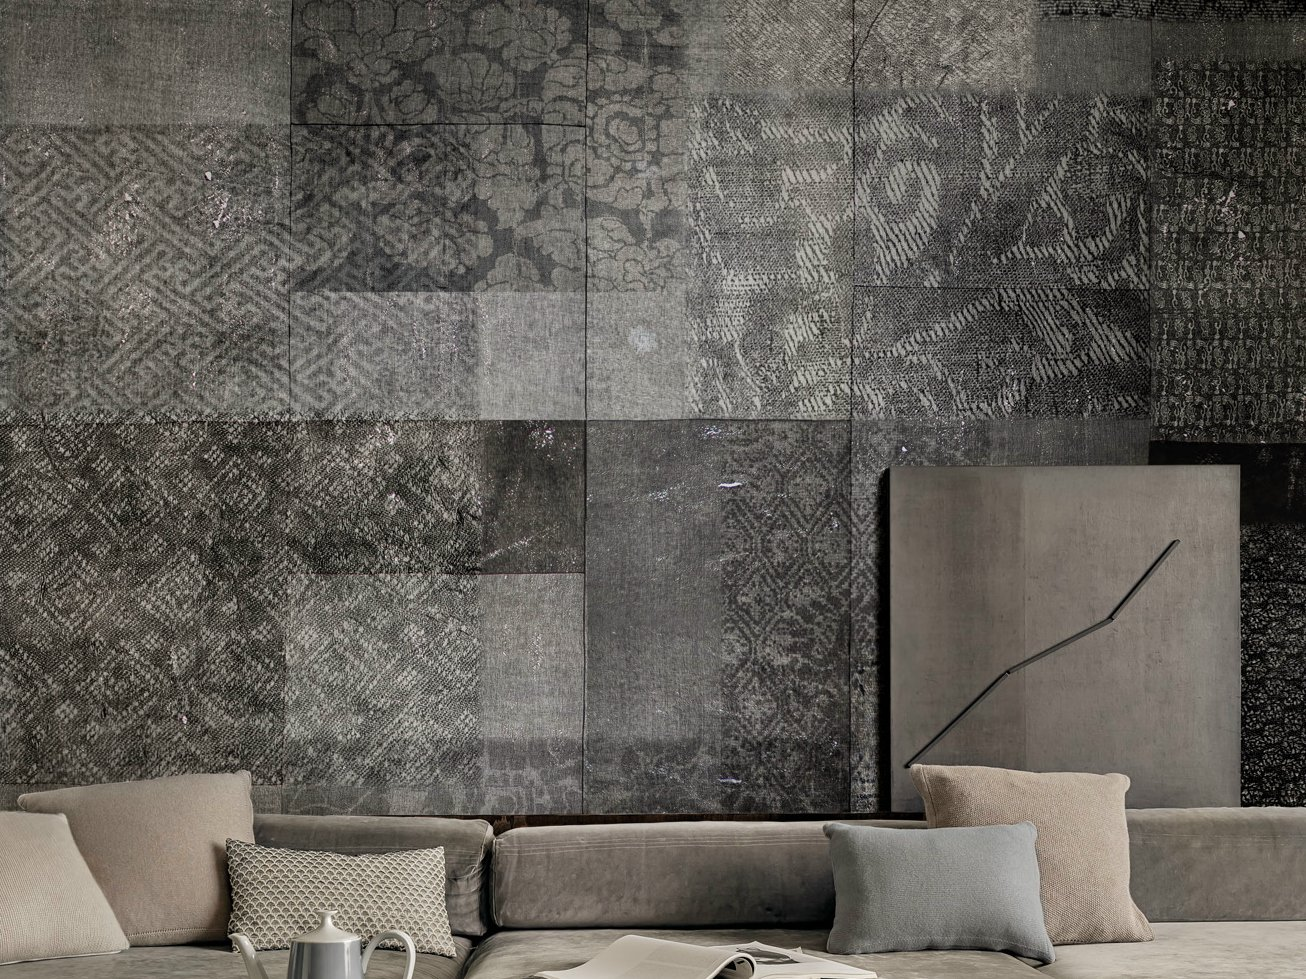 motif wallpaper ensemble by wall dec design lorenzo de. Black Bedroom Furniture Sets. Home Design Ideas